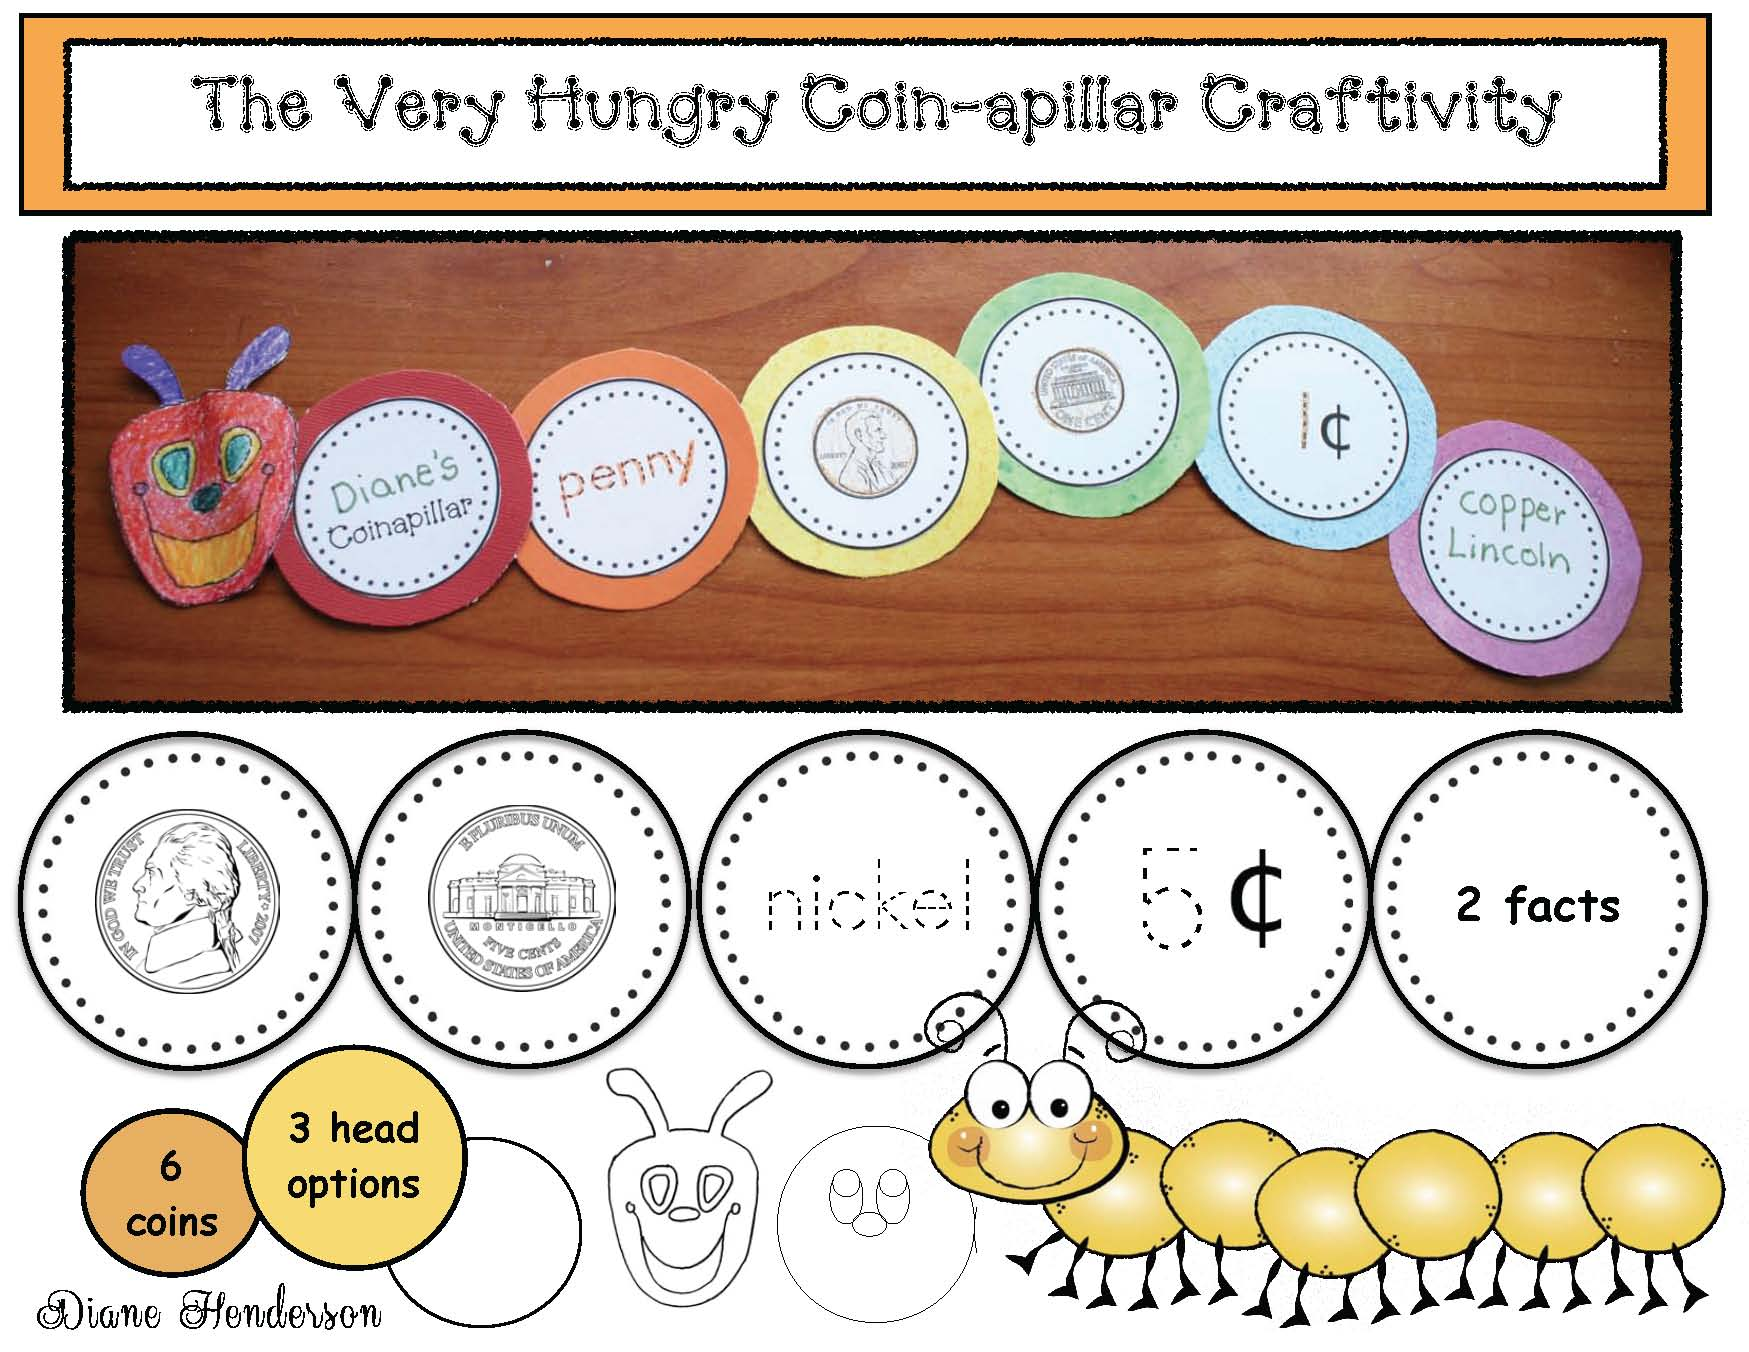 very hungry caterpillar activities, coin activities, telling time to the hour and half hour, telling time activities, caterpillar crafts, spring bulletin board ideas, butterfly activities, butterfly crafts, 2D shape activities, 3D shape activities, alphabet crafts, skip counting activities, coin crafts, coin activities, telling time to the hour activities, spring word work,